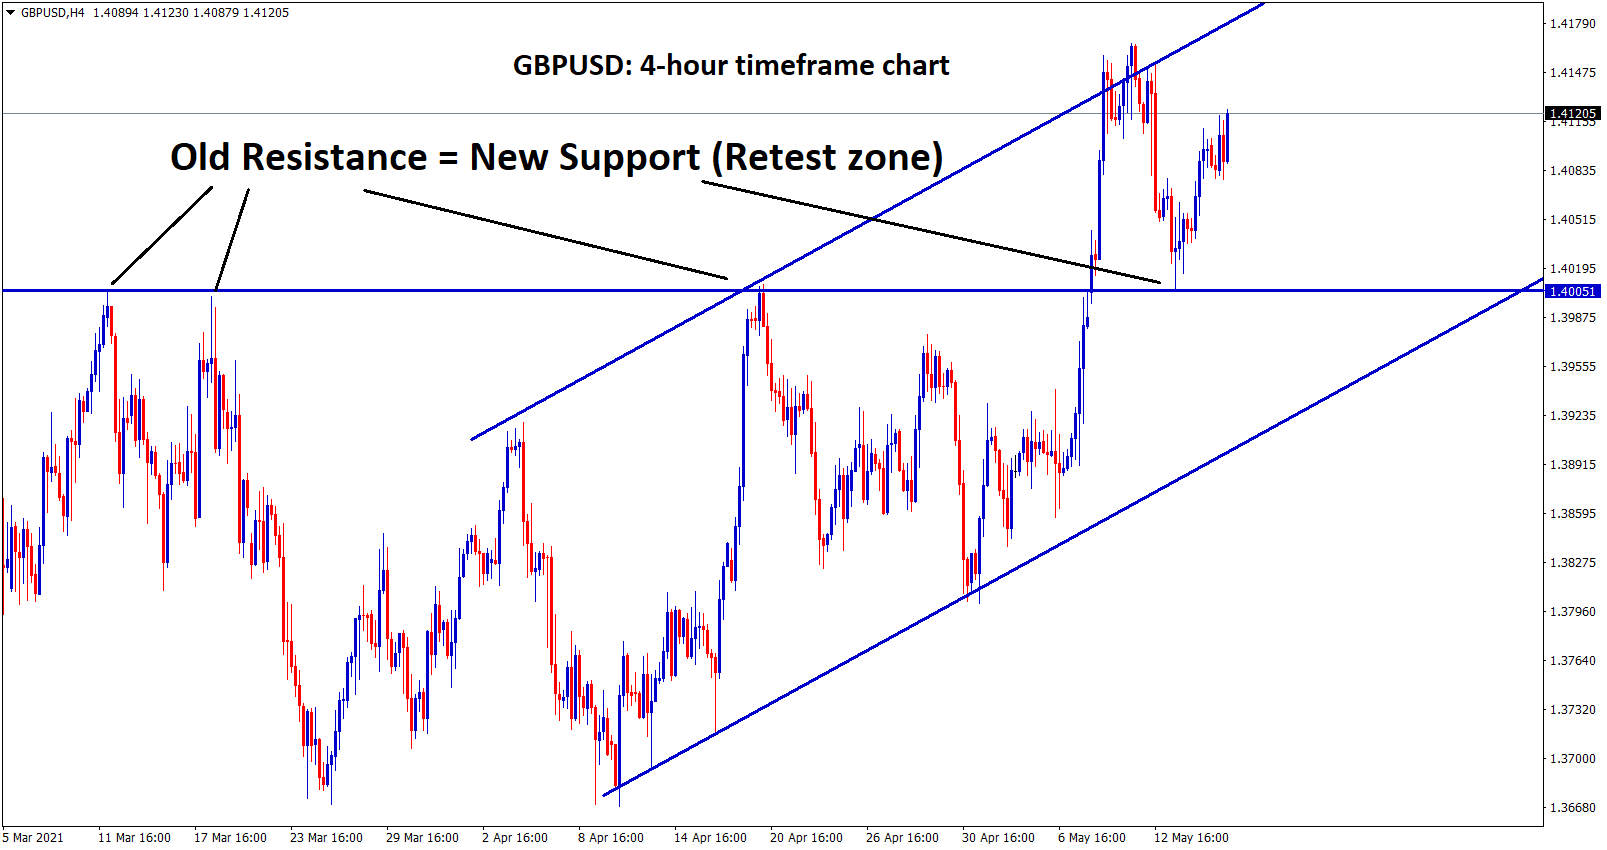 GBPUSD is moving up after retesting the support zone.